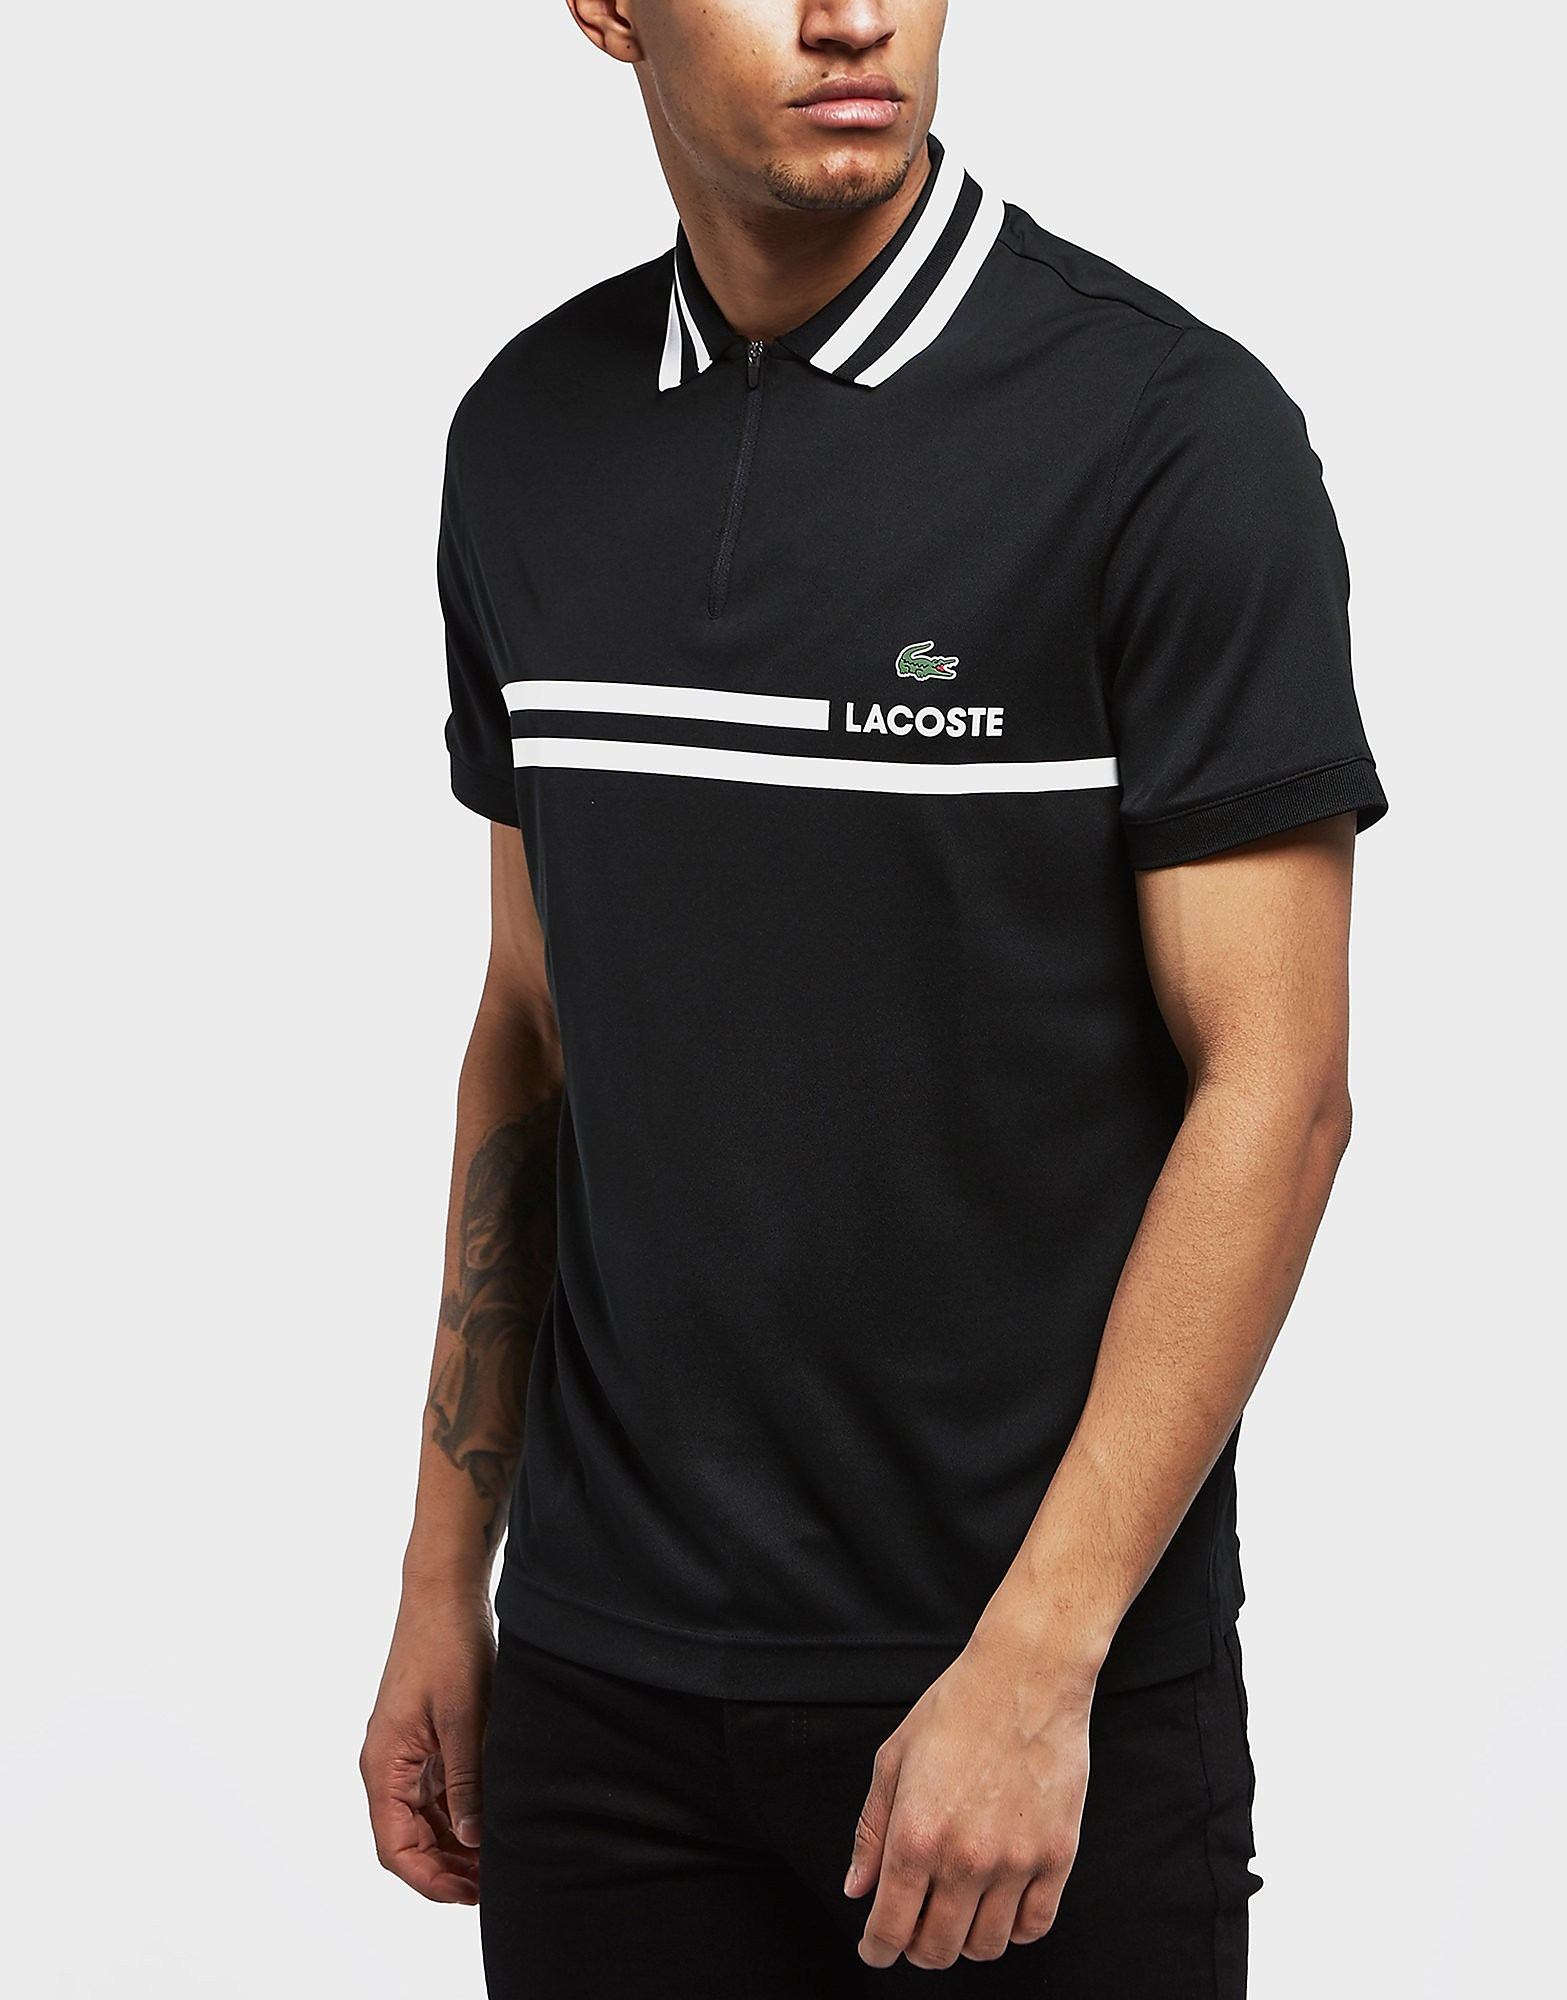 Lacoste Zip Neck Stripe Short Sleeve Polo Shirt